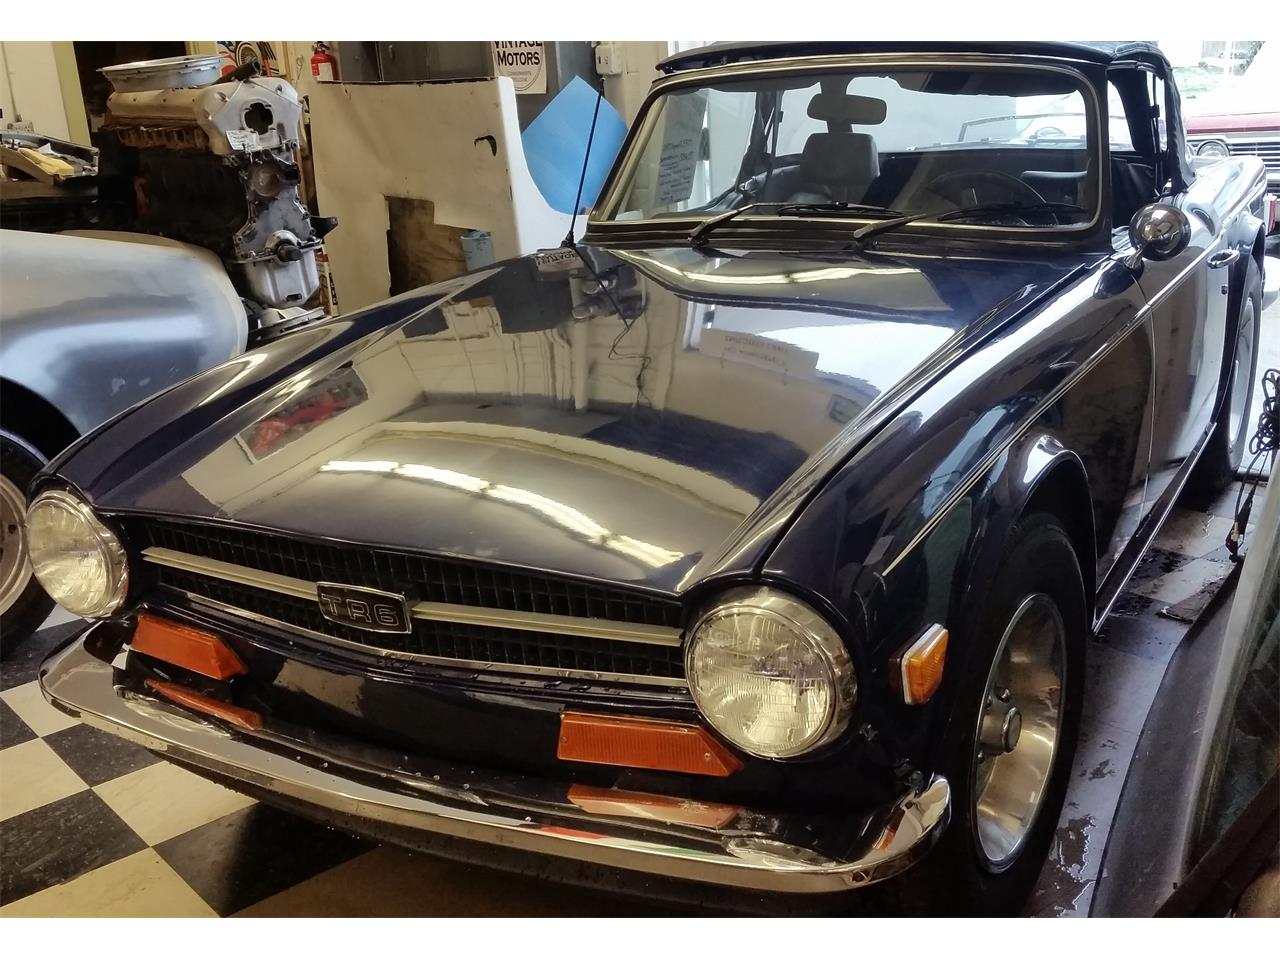 1973 Triumph TR6 for sale in Carnation, WA – photo 7